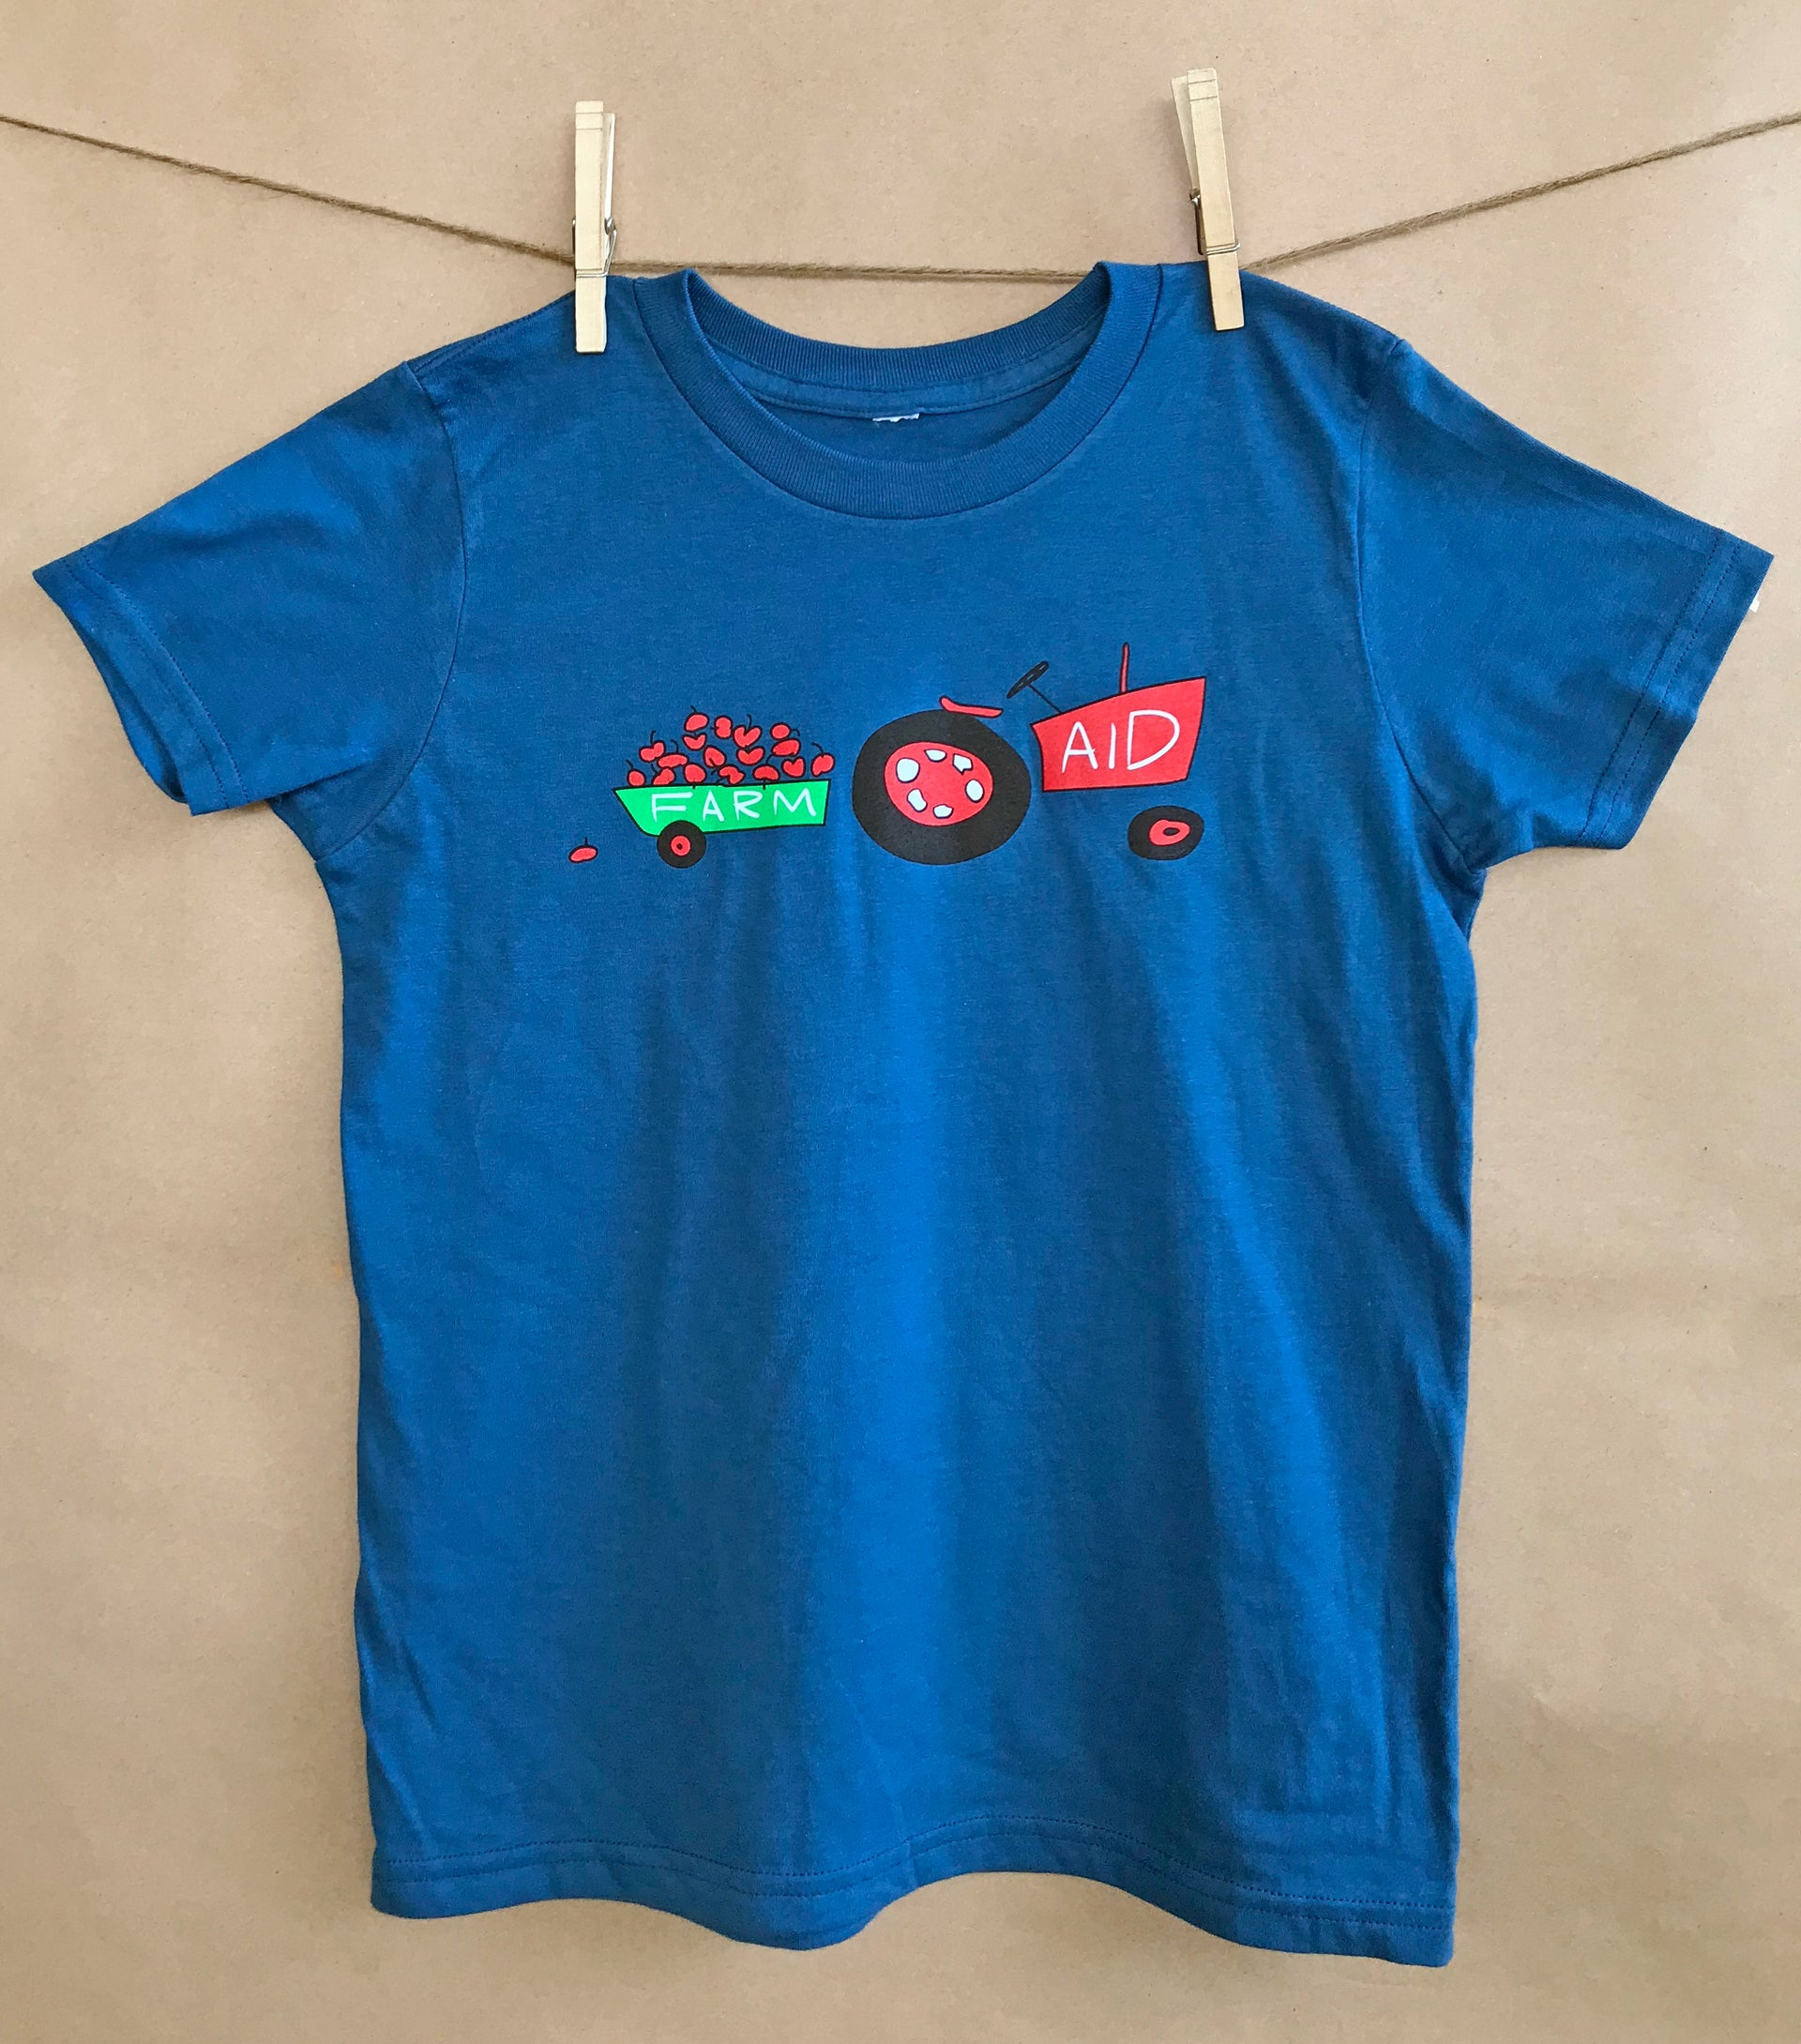 Farm Aid 2018 Kids' Apple Tee